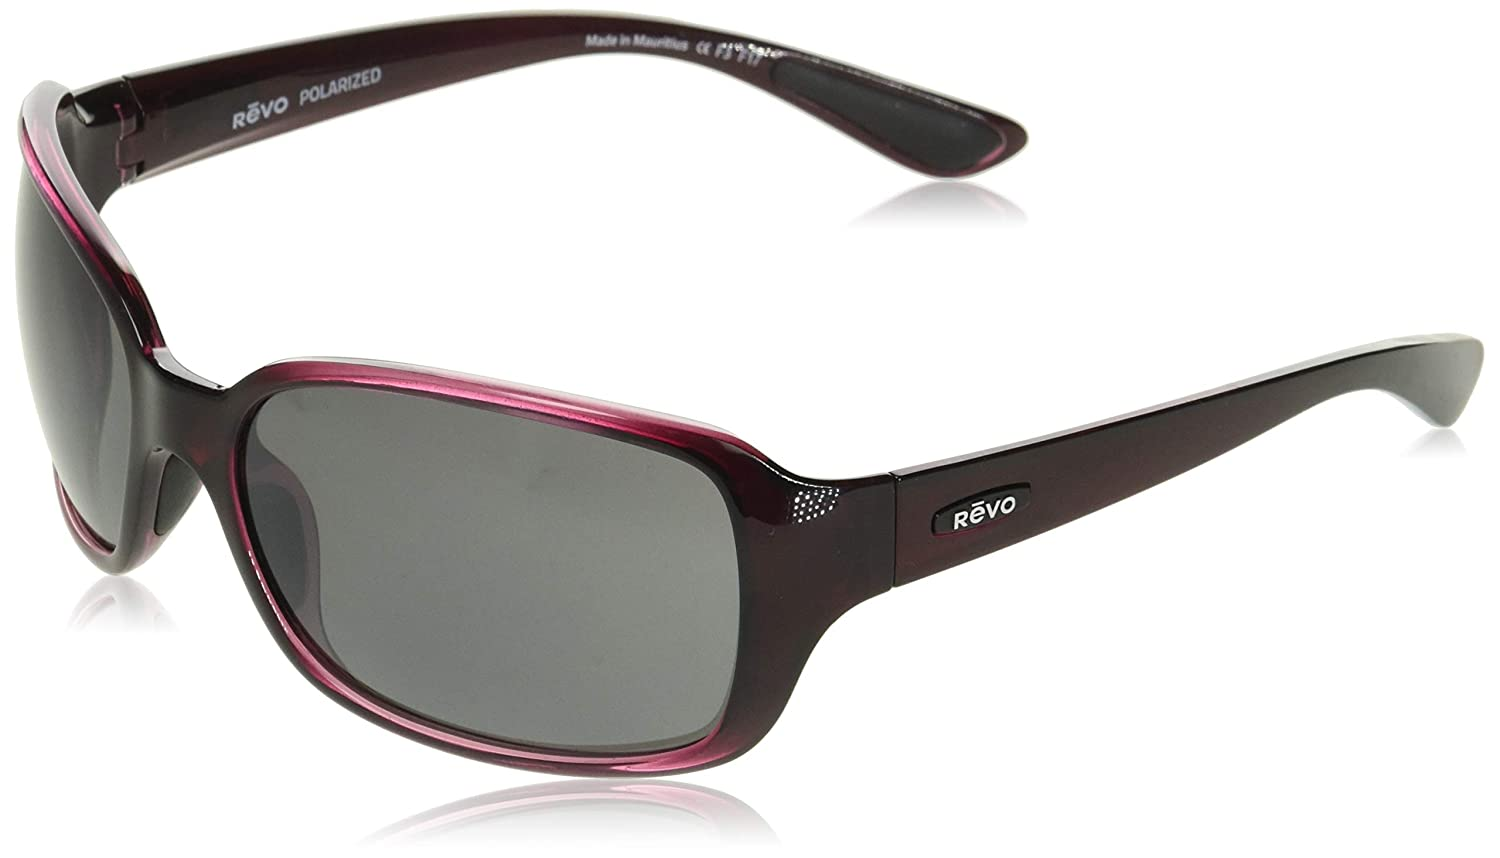 Revo Unisex Unisex RE 1042  Fairway Wraparound Polarized UV Protection Sunglasses Revo Sunglasses